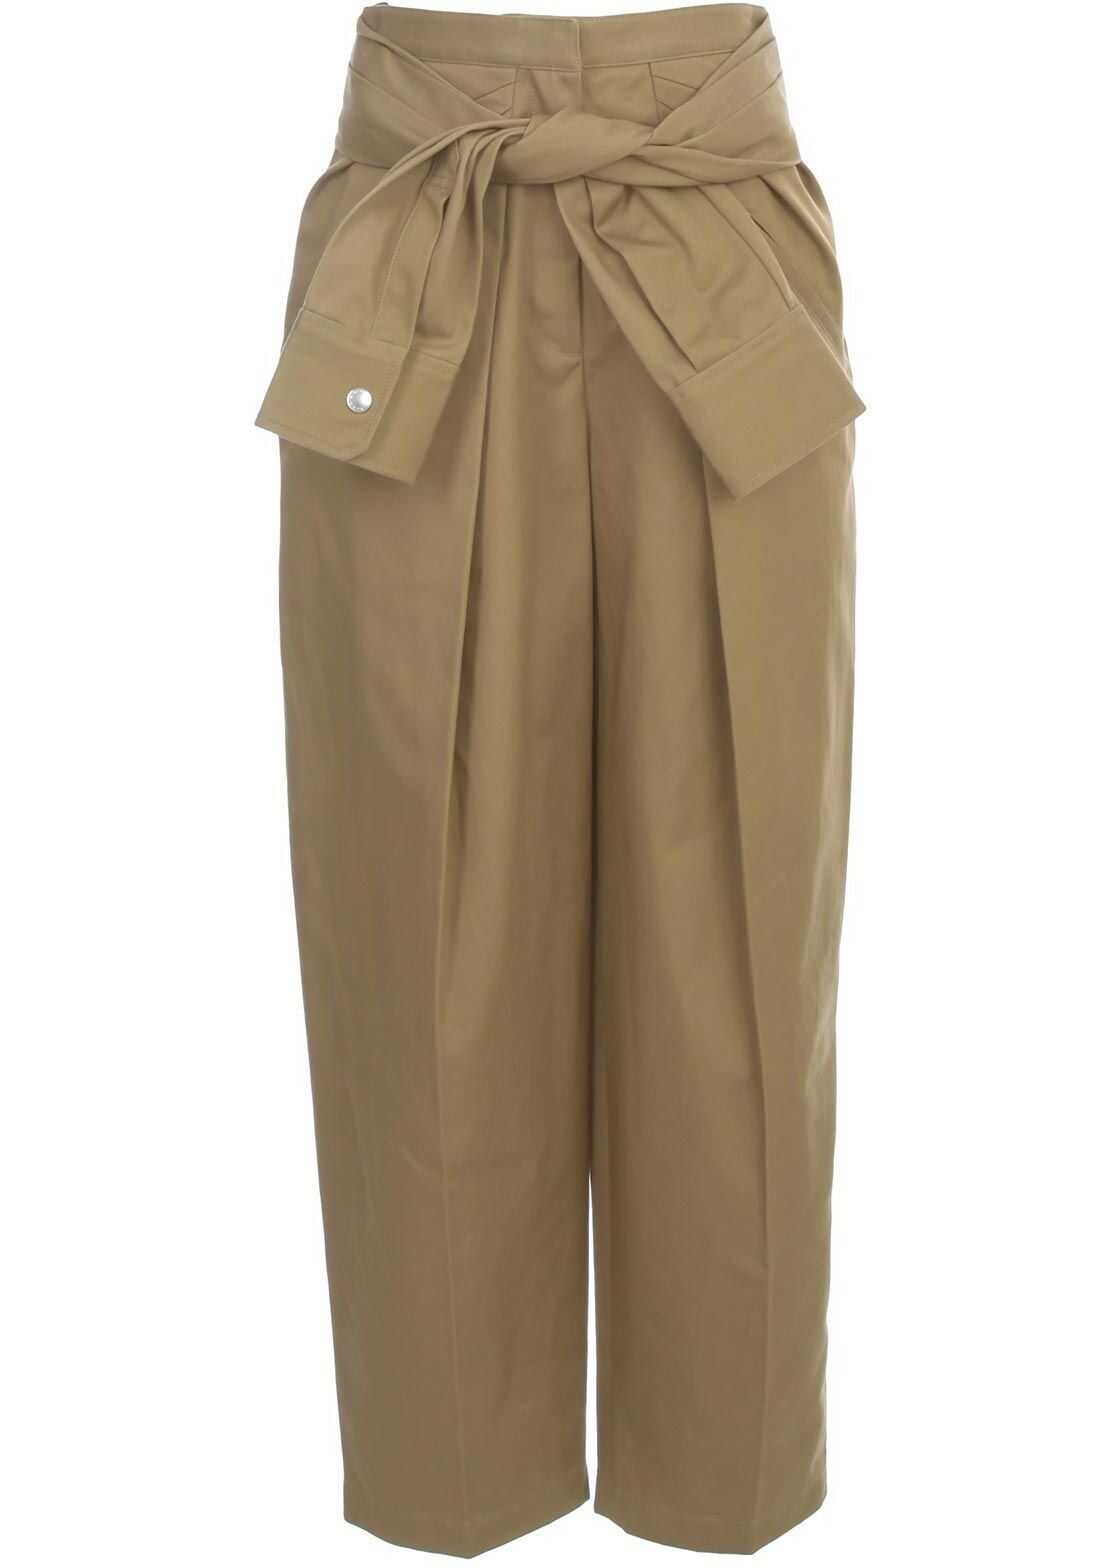 Alexander Wang Cotton Pants BEIGE